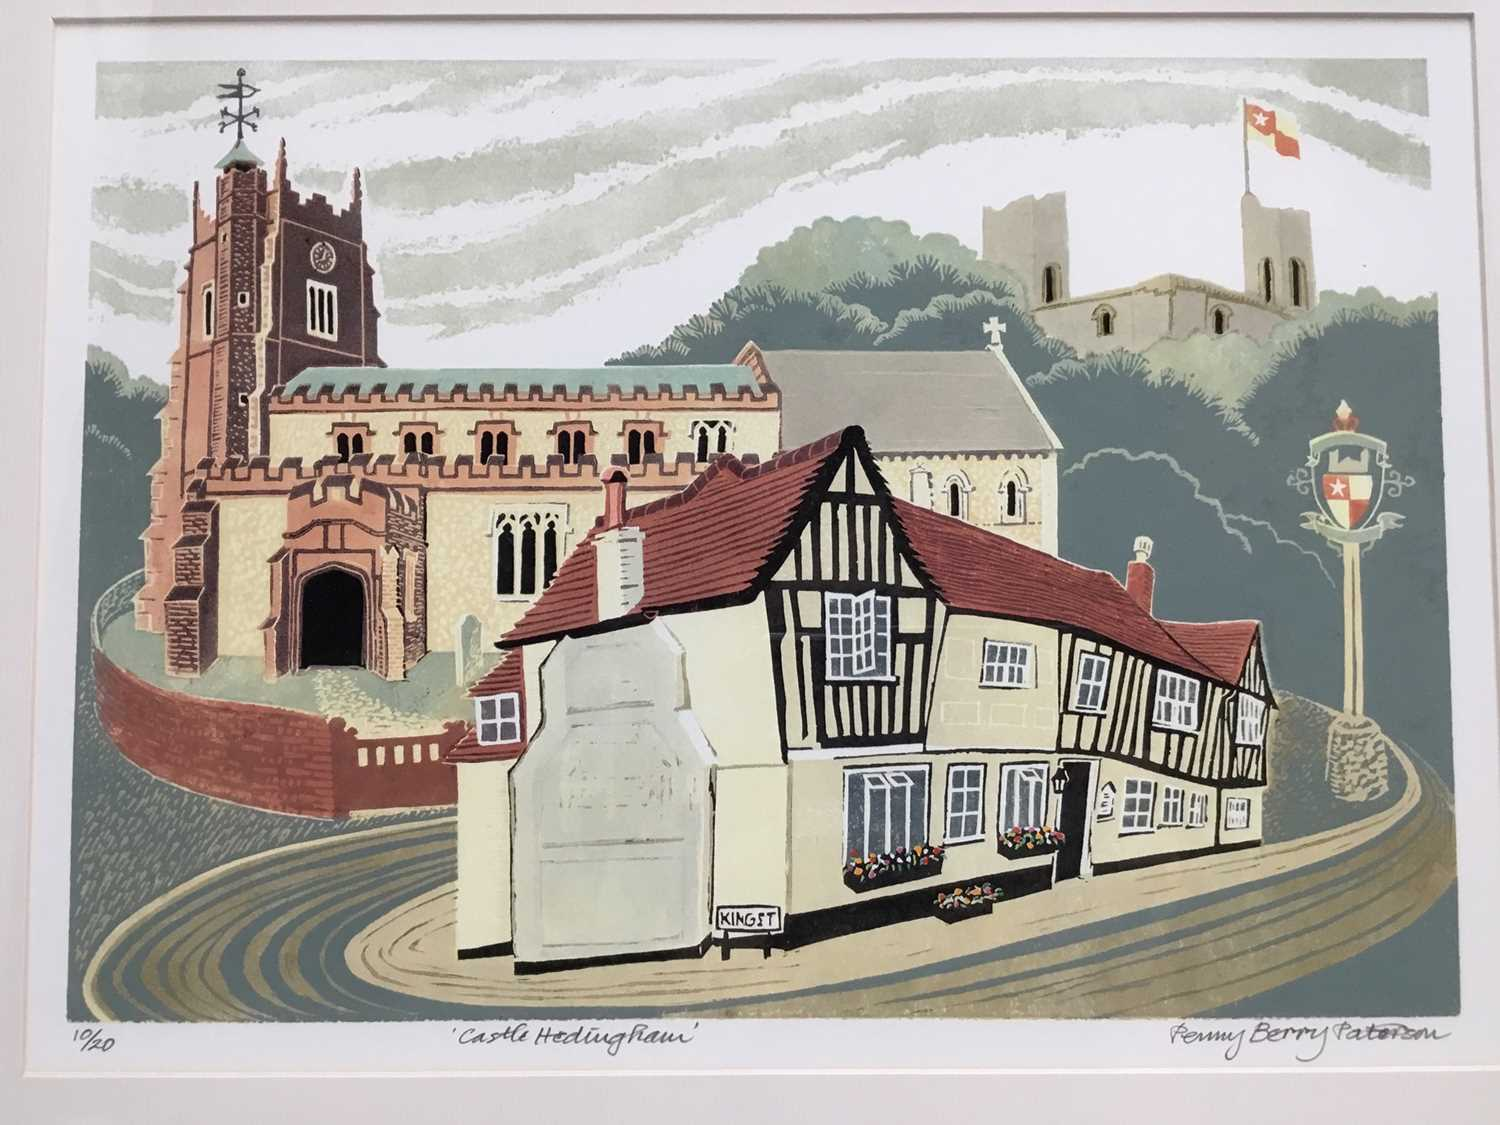 Penny Berry Patterson (1941-2021) colour linocut, Castle Hedingham, signed titled and numbered 10/20